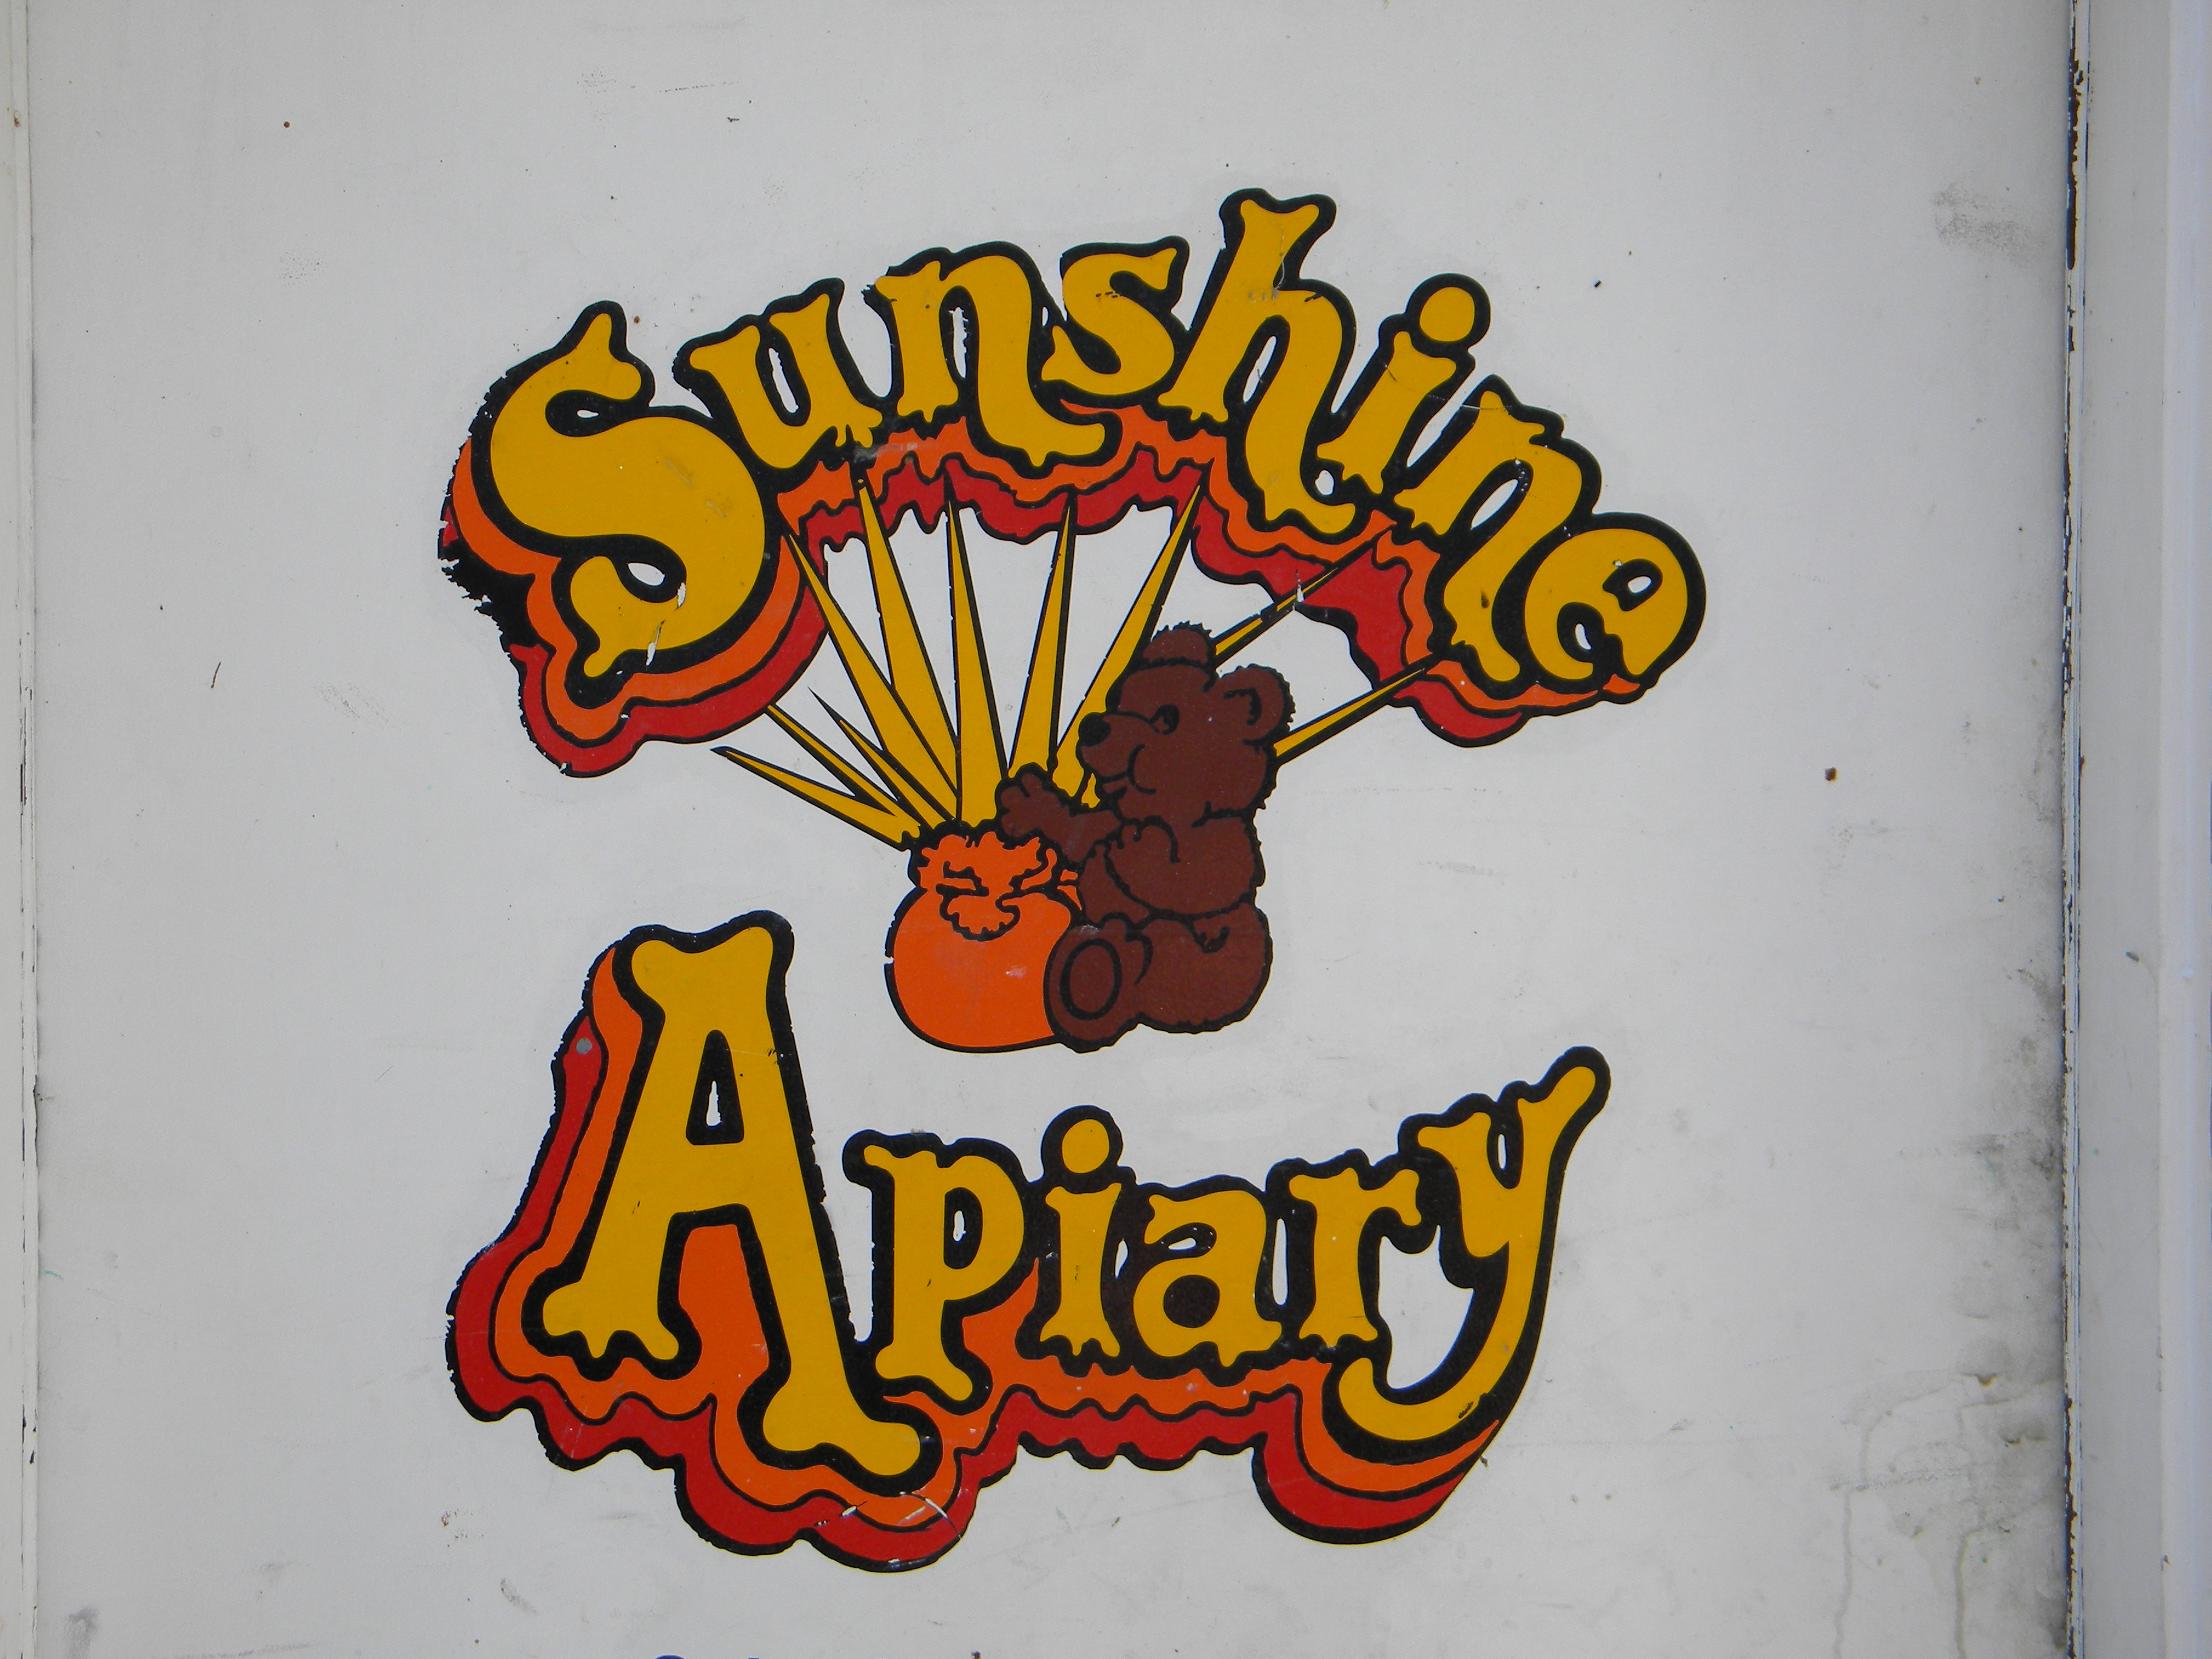 Sunshine Apiary located in Columbus, Montana